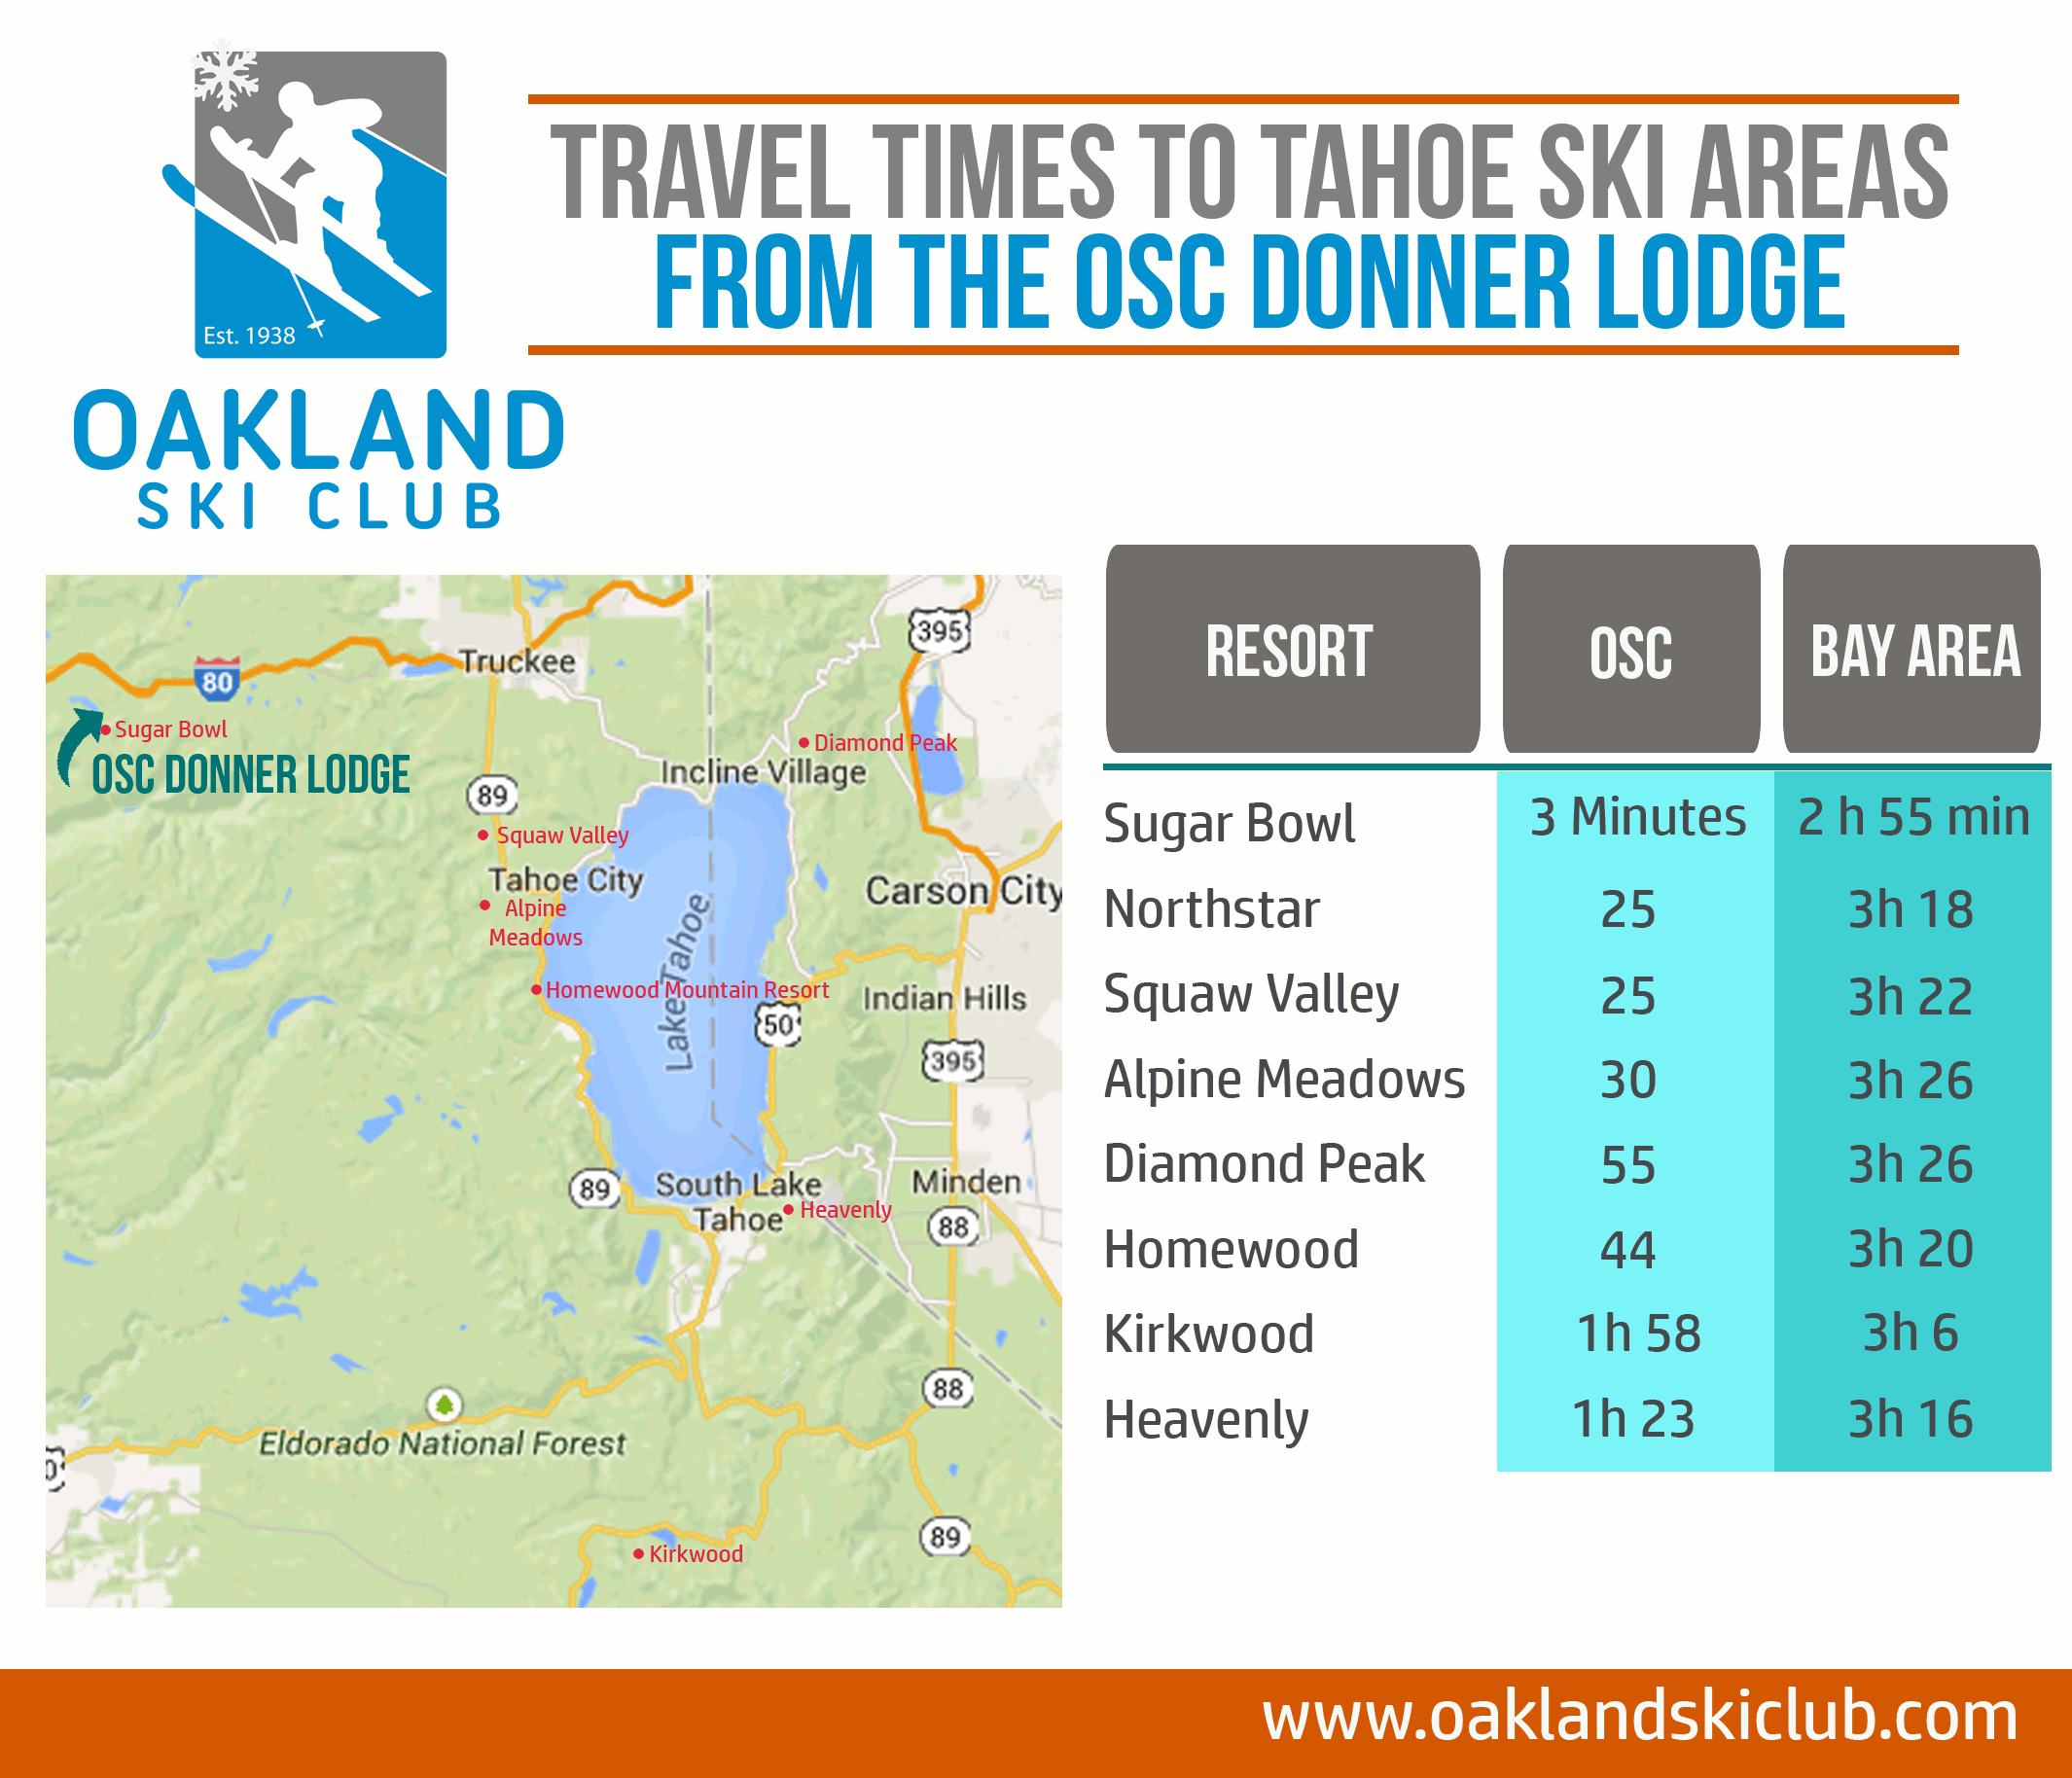 Oakland Ski Club Donner Lodge Travel Times